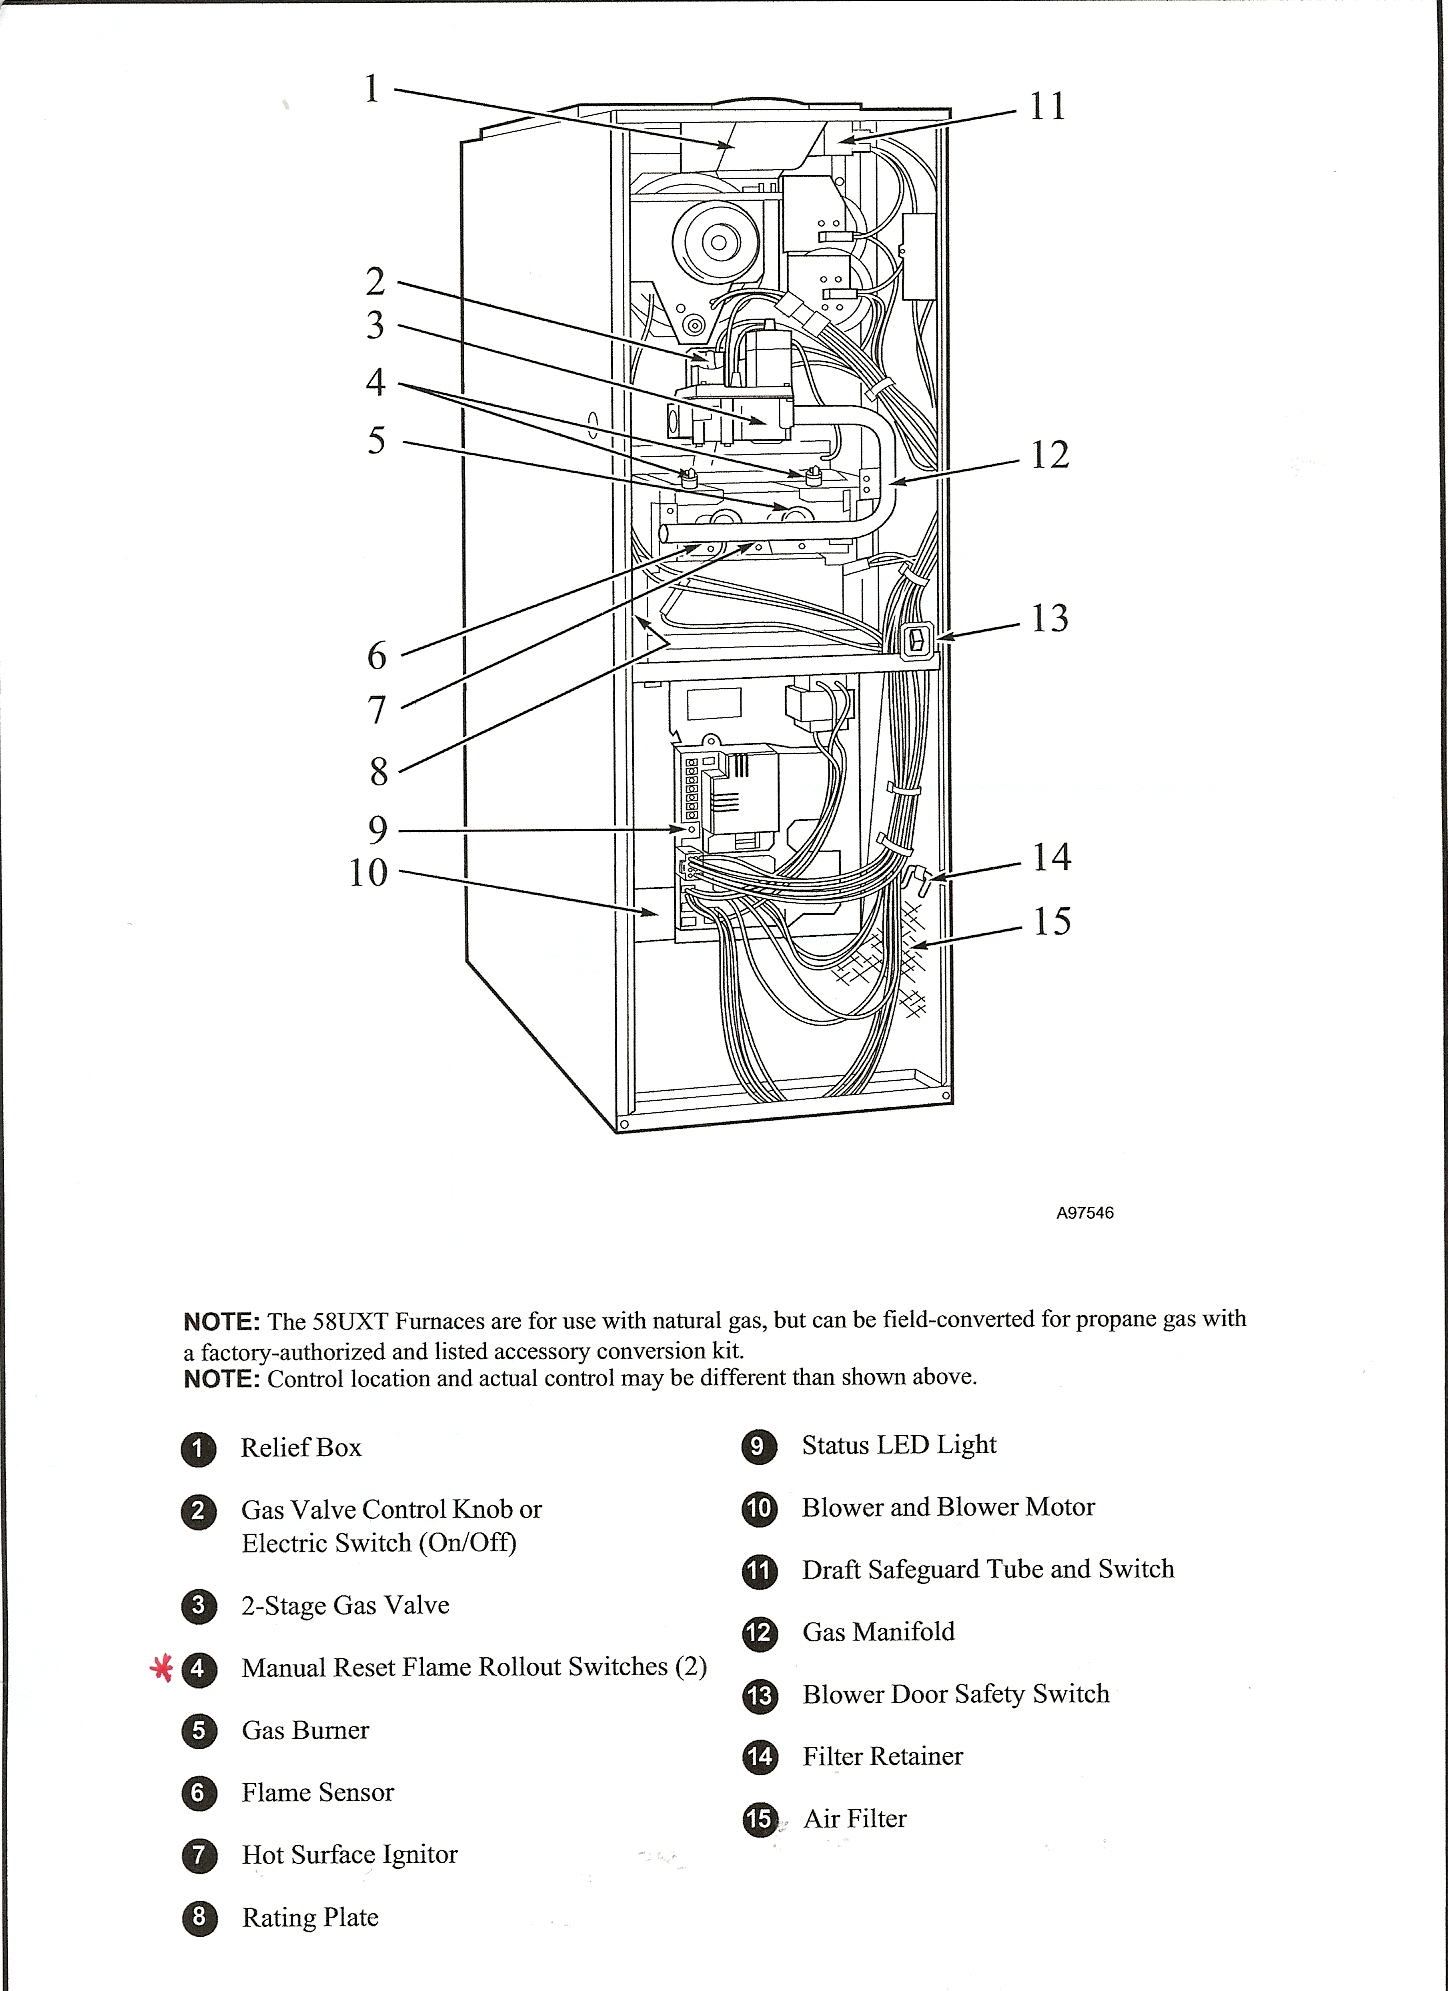 Boiler Wiring Diagram On Safety Switch Wiring Diagram For Furnace